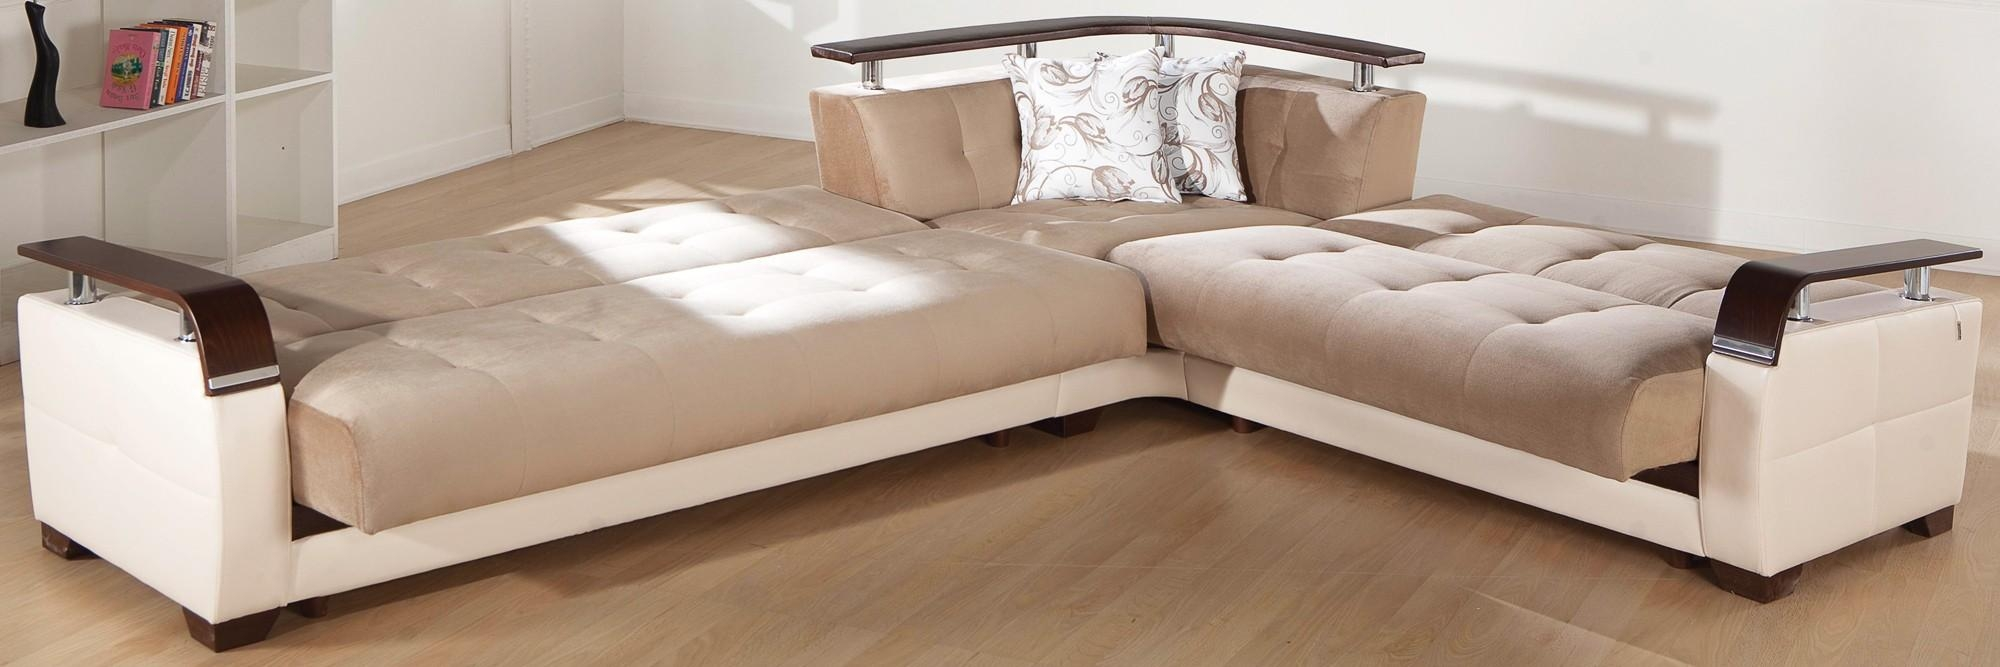 Natural Sectional Sofa Sleeper ( Within Sleeper Sectional Sofas (Image 11 of 20)